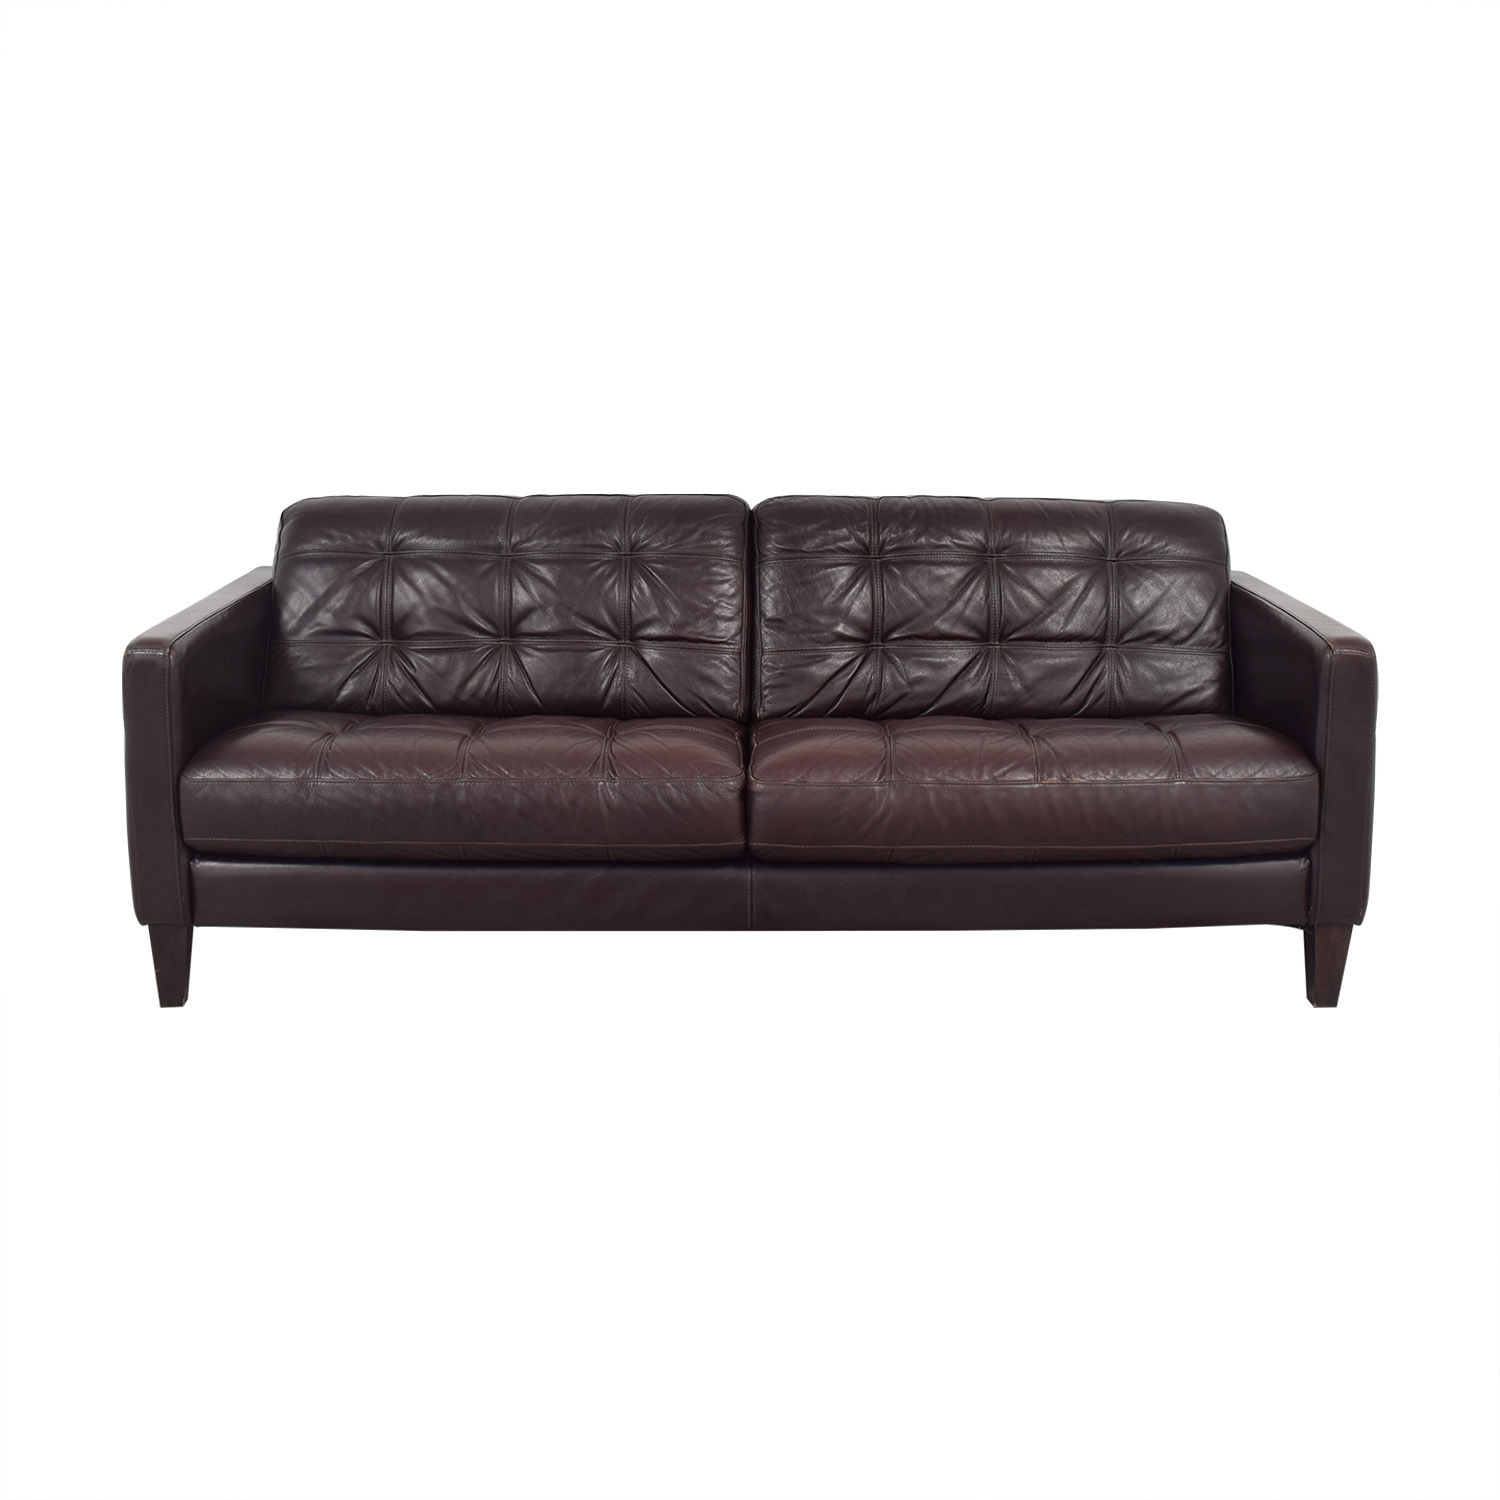 Macy's Tufted Two Cushion Sofa / Sofas